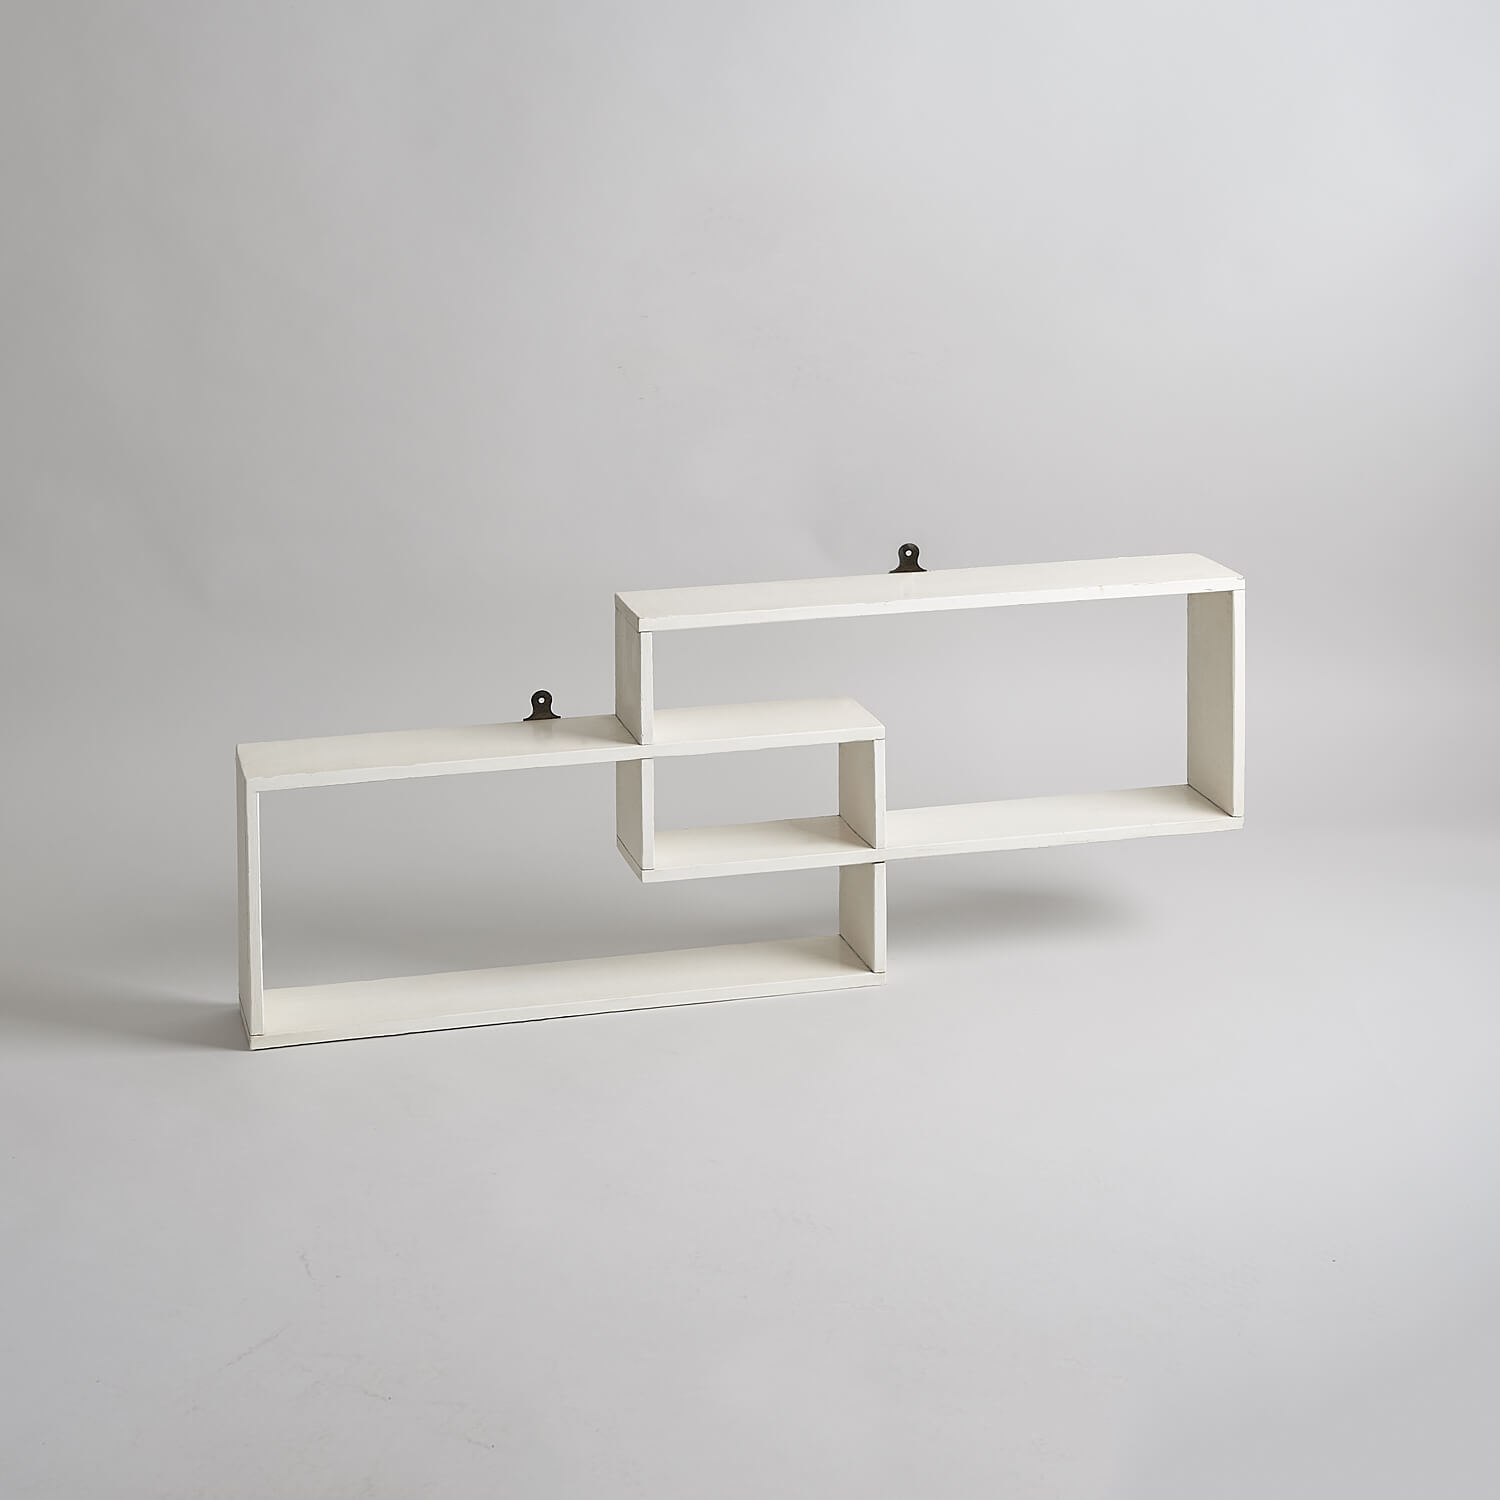 Modernist wall shelving unit